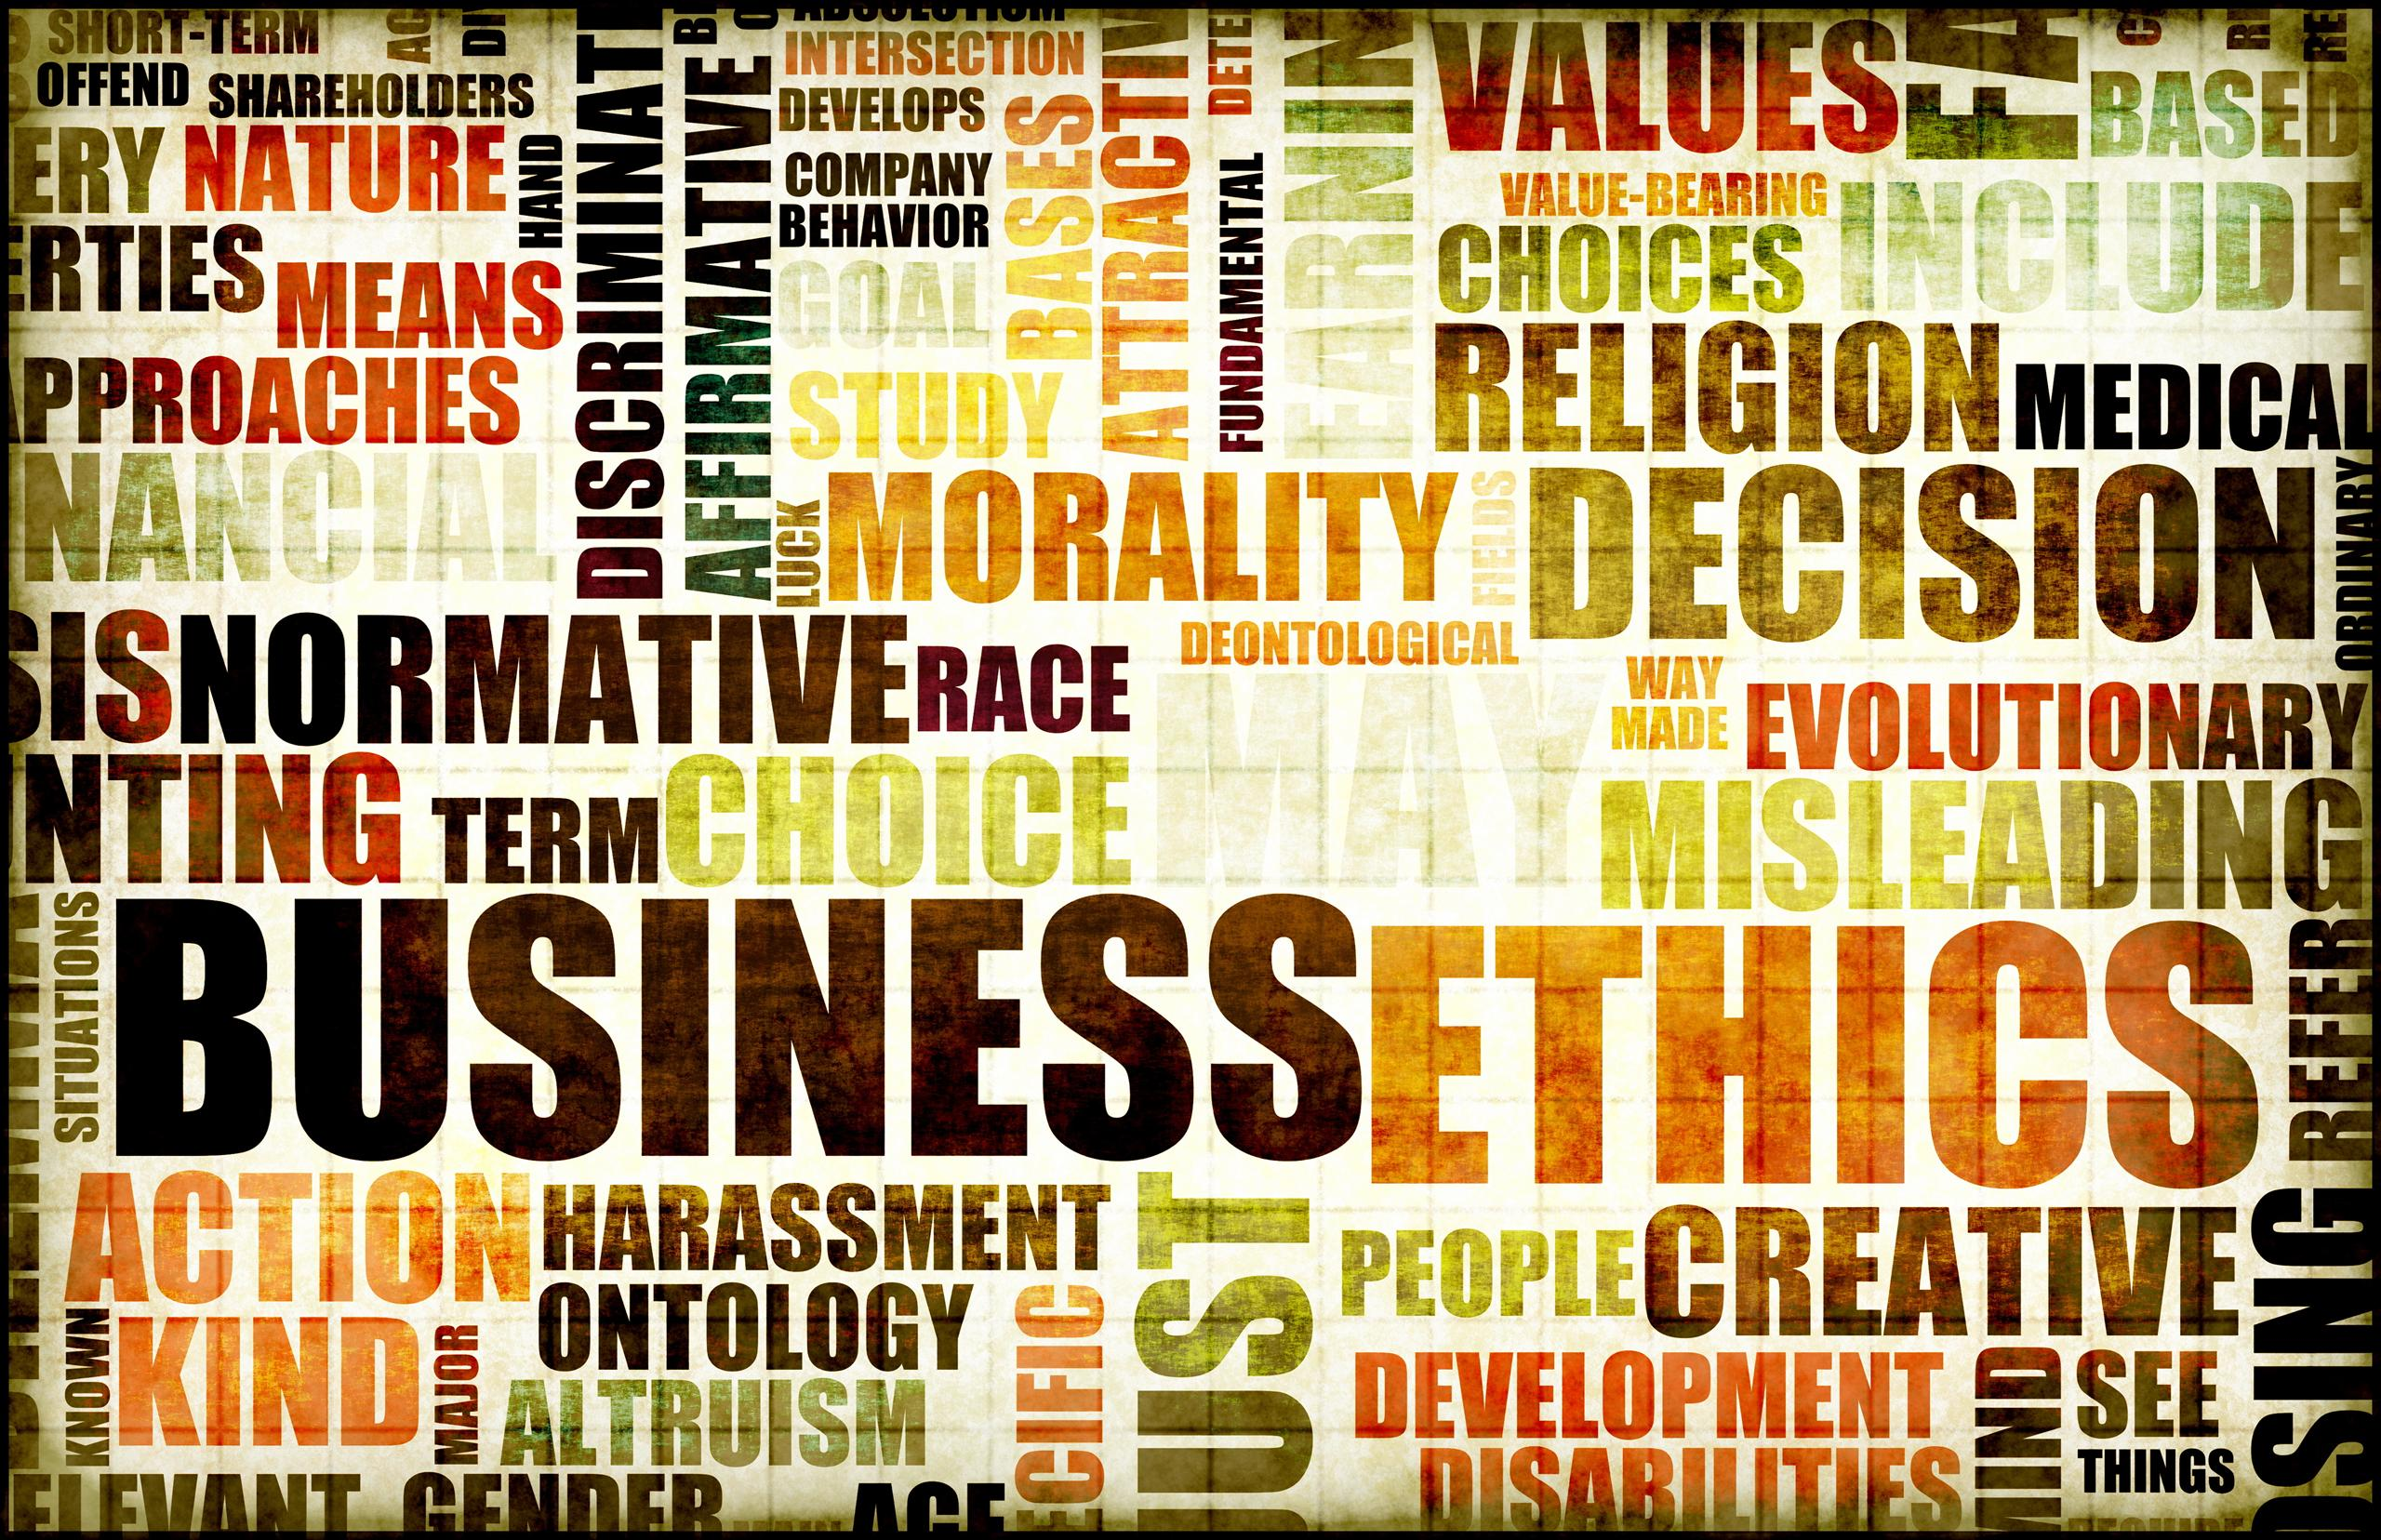 typographic image showing the term 'business ethics' and related words